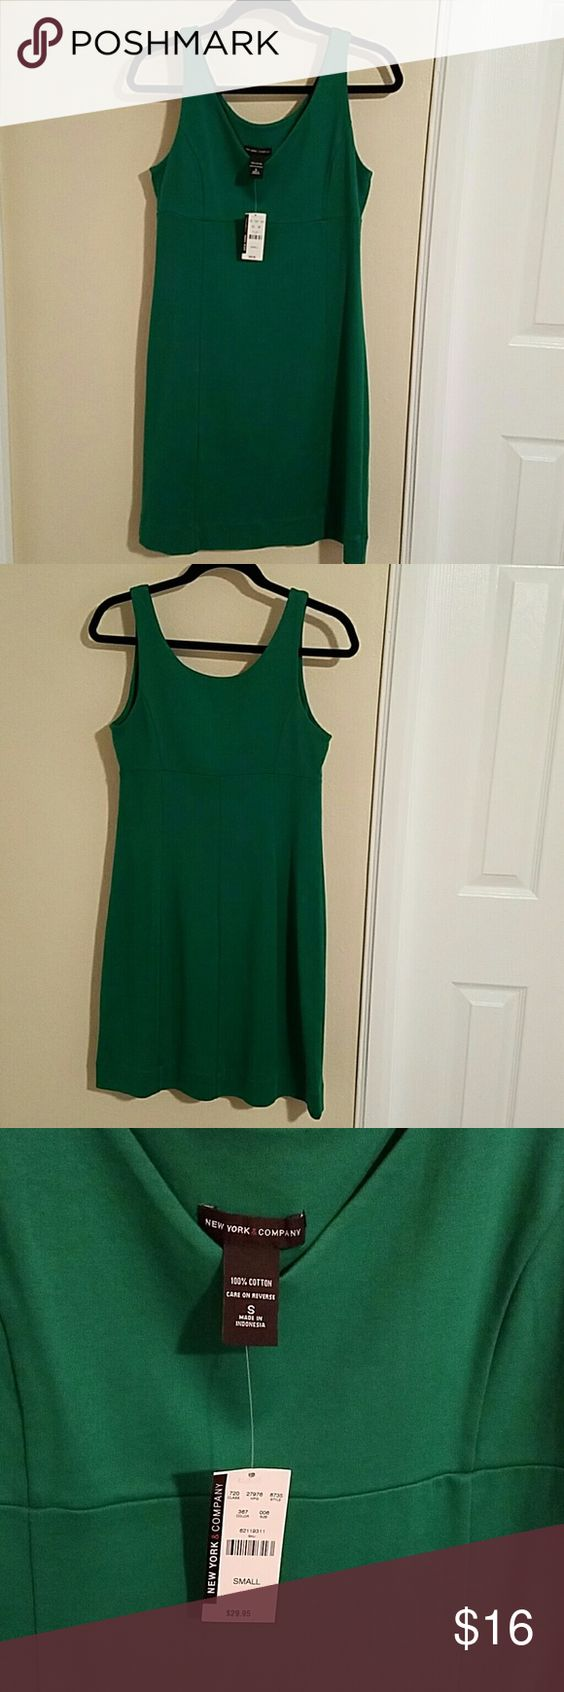 new york company green career dress nwt vestidos new york company green career dress underarm is 16 inches length is 35 inches new york